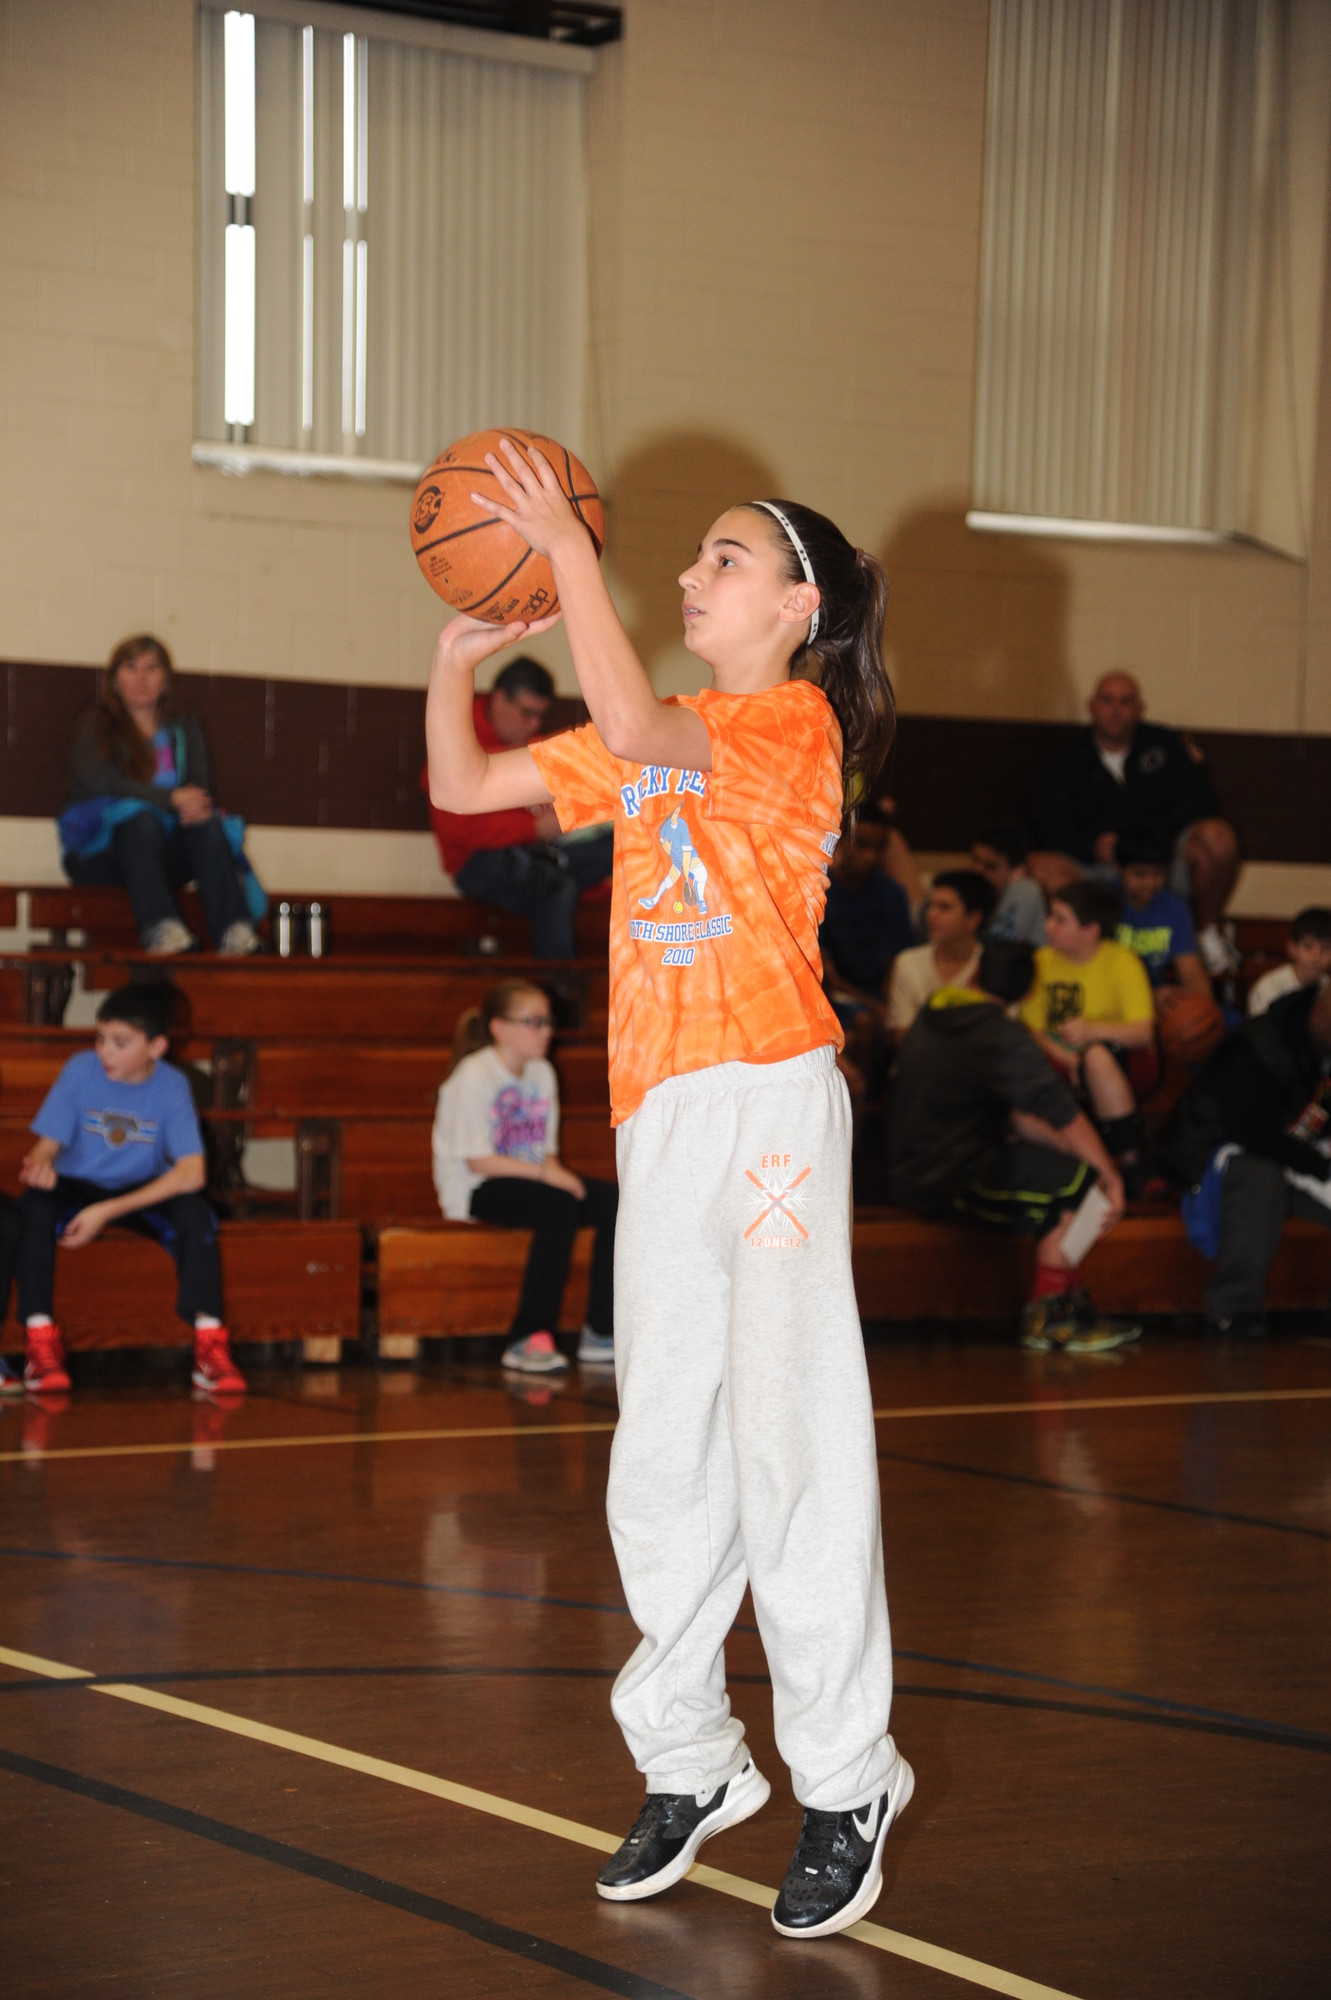 Hannah Arbuse, 13, lined up her shot in the gymnasium of St. Raphael's parish.